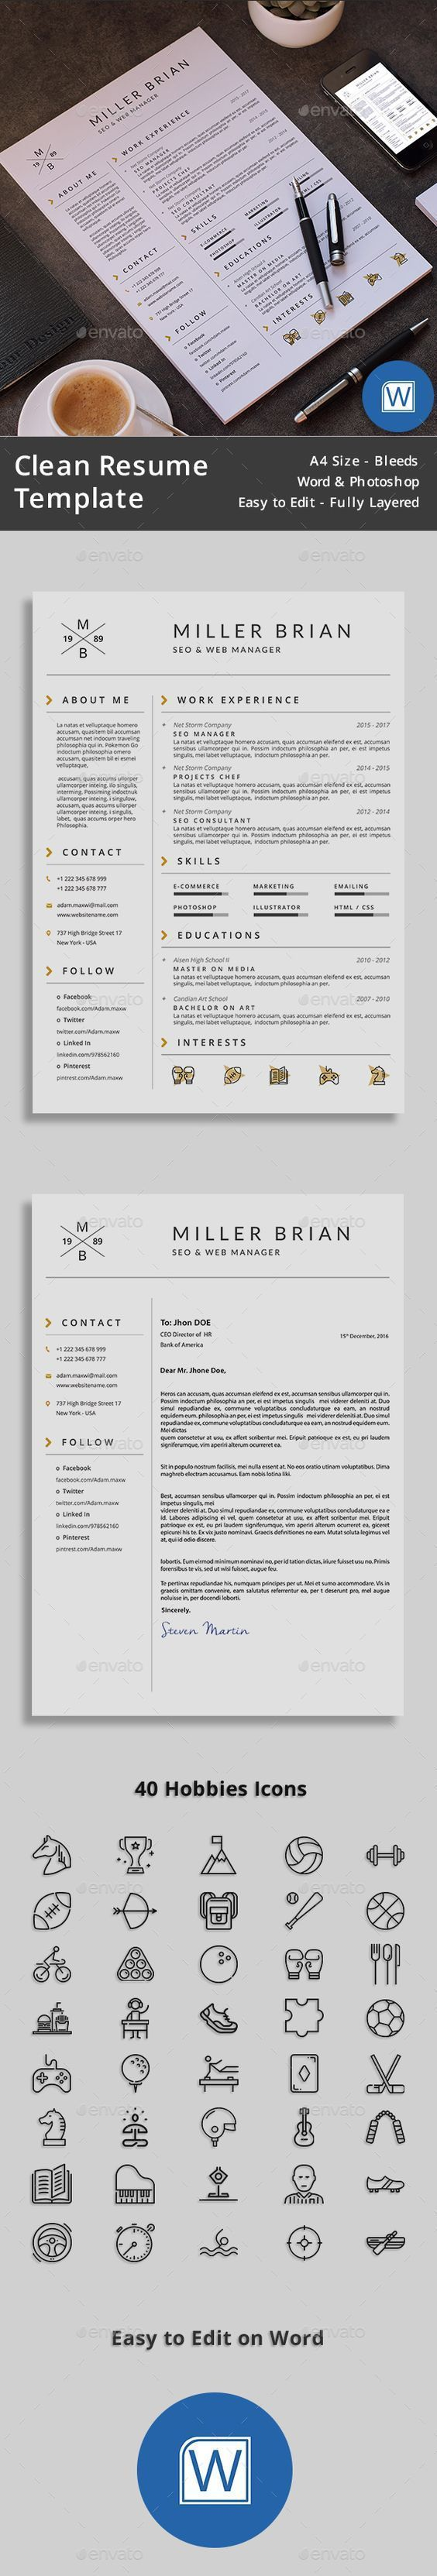 Professional & Modern Resume Template for MS Word | CV Template for word | Resume template for word  - 100% Editable.  - Instant Digital Download. - US Letter & A4 size format included. - Mac & PC Compatible using Ms Word. - Resume writing guide - Tap the link now to Learn how I made it to 1 million in sales in 5 months with e-commerce! I'll give you the 3 advertising phases I did to make it for FREE!